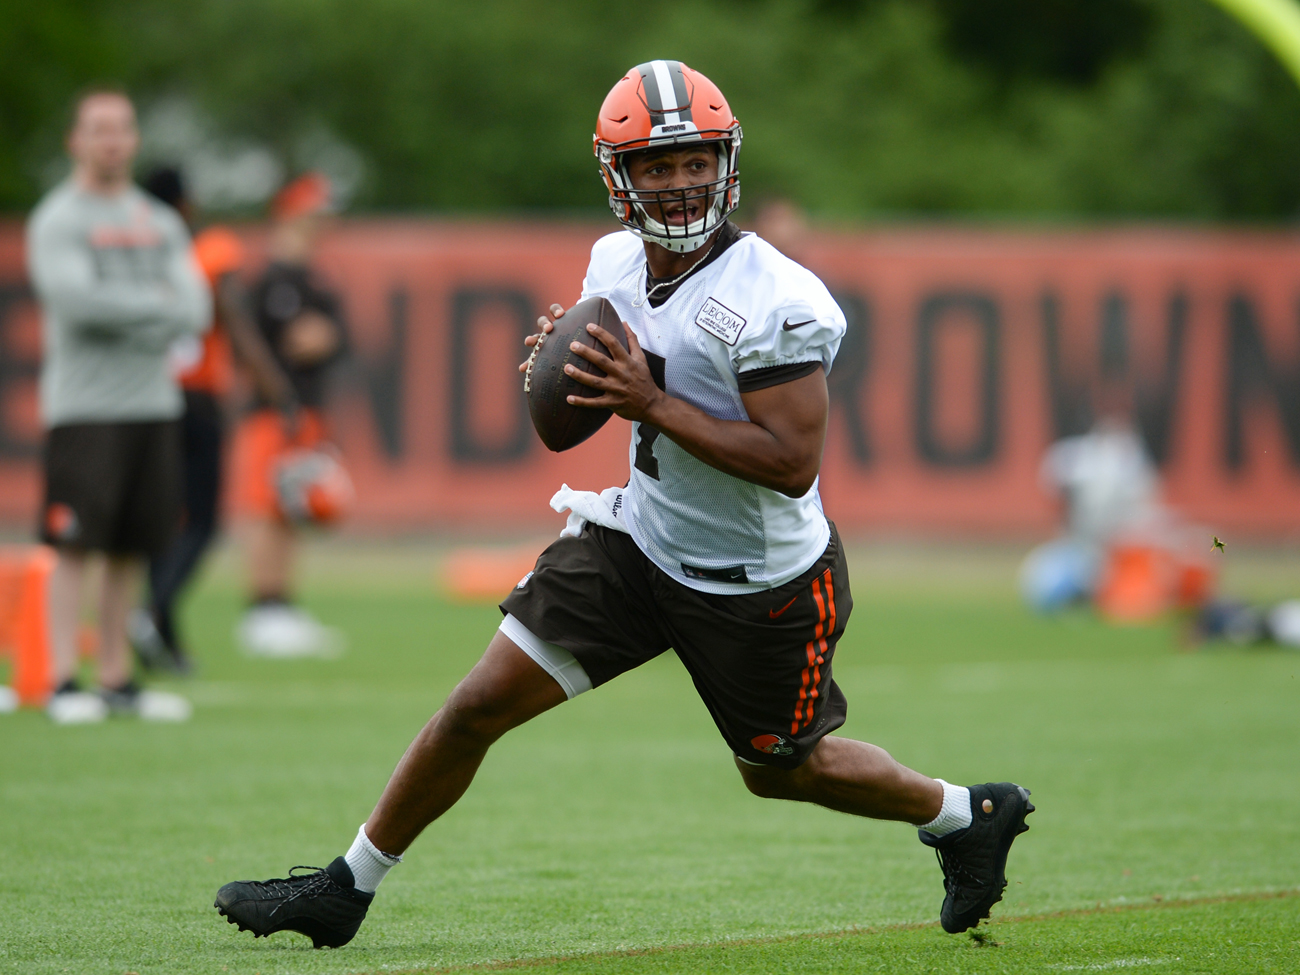 Browns rookie quarterback Deshone Kizer turned some heads during the team's minicamp.